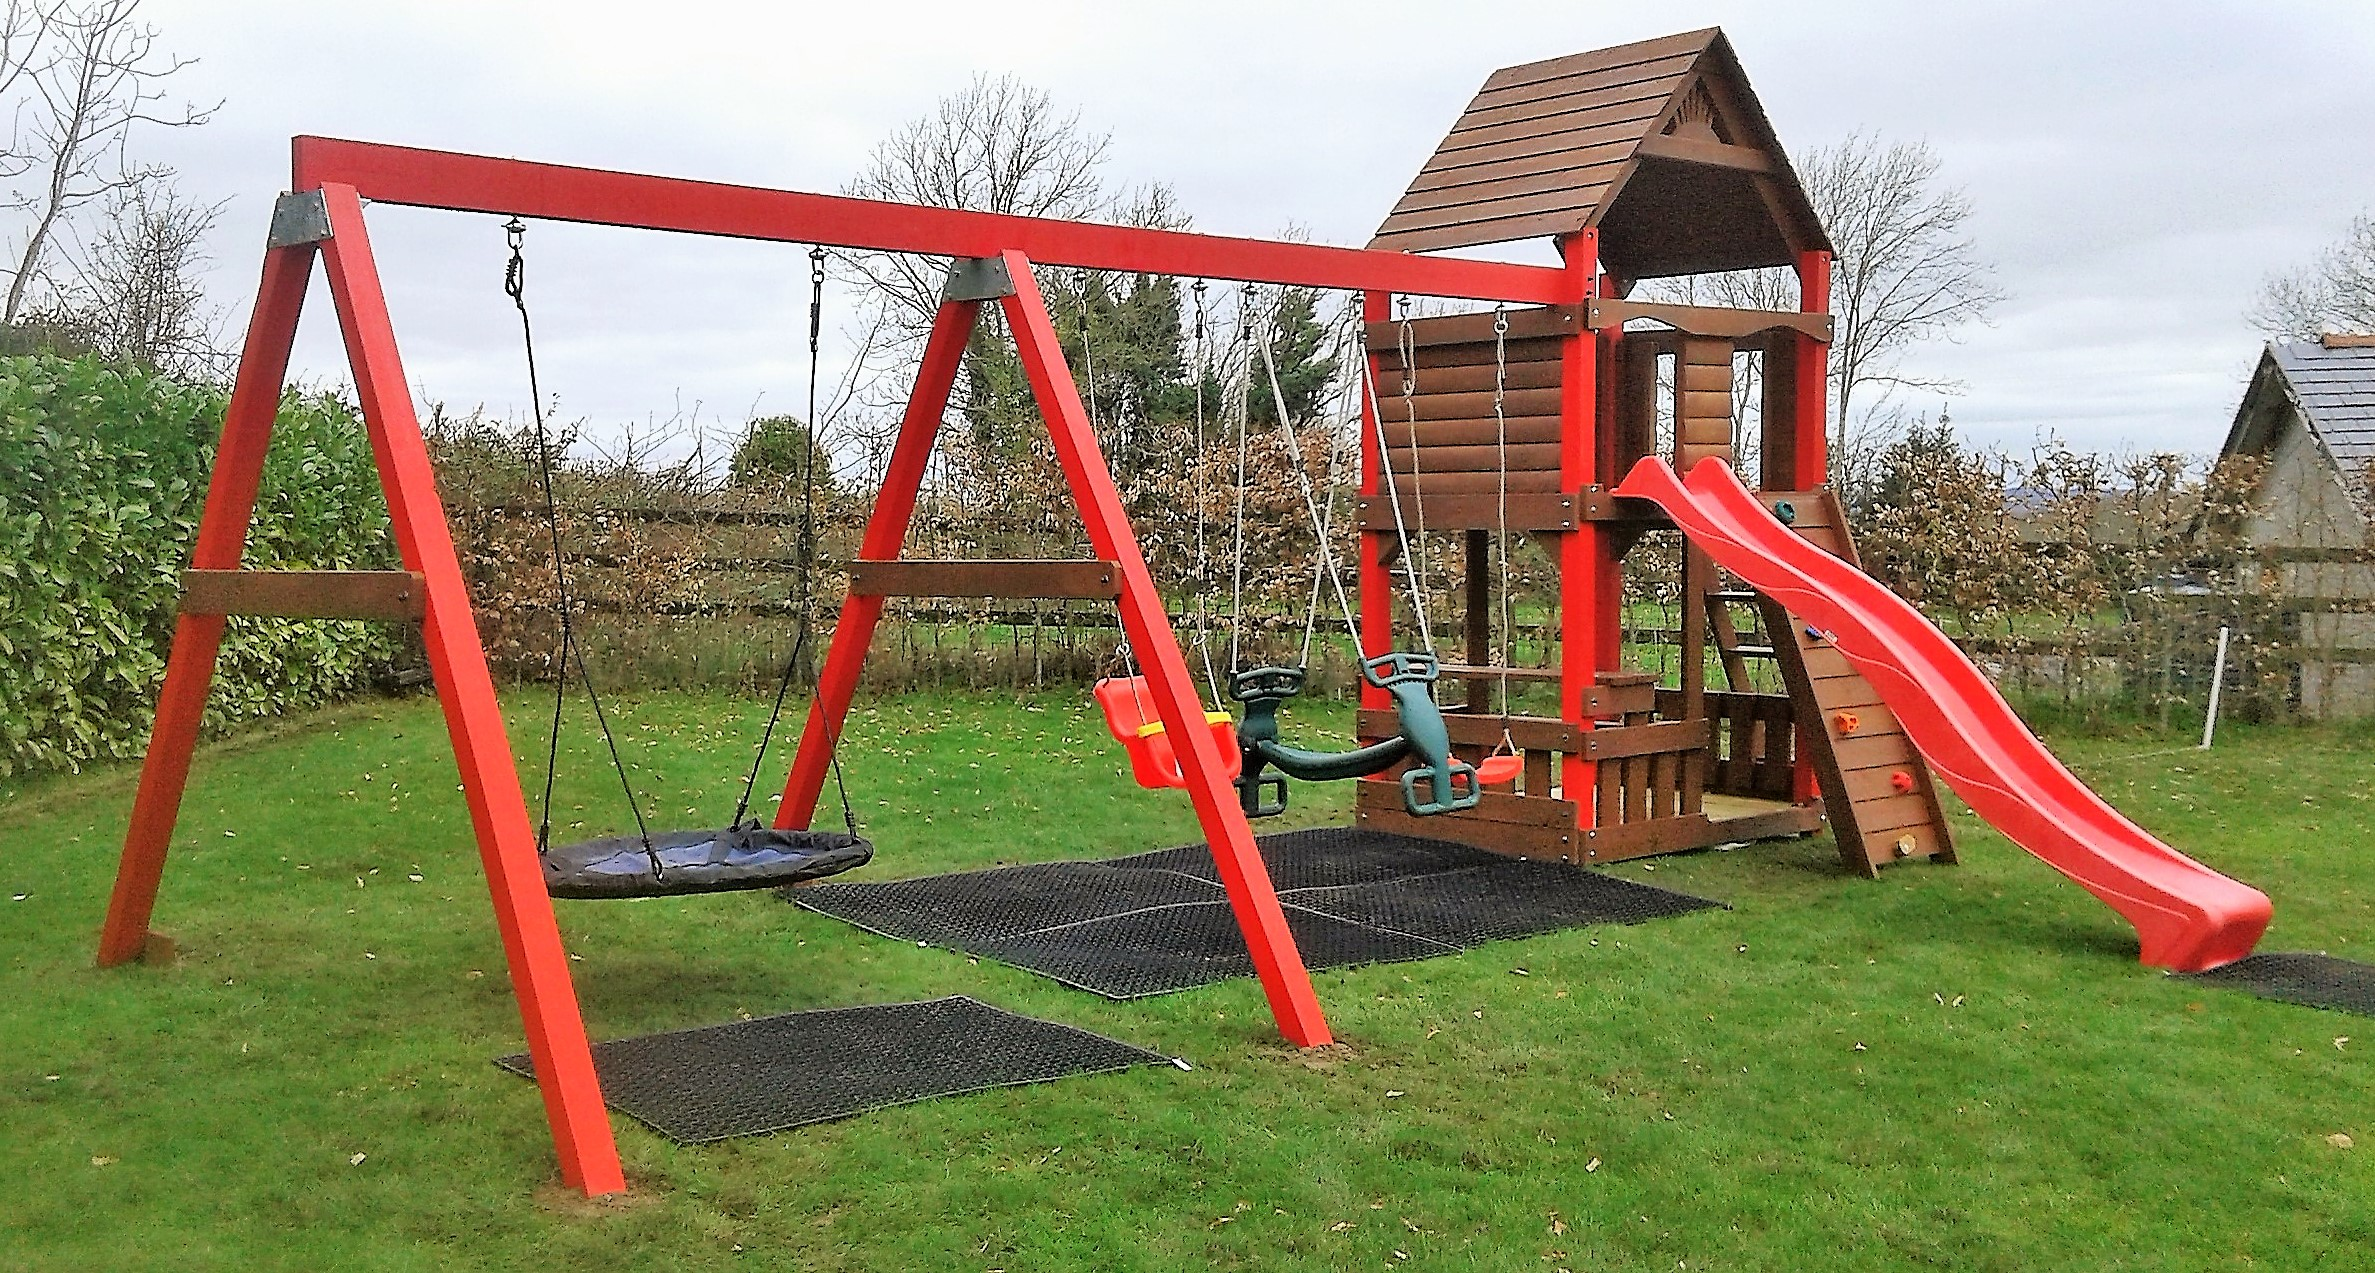 Playcentre-Ruby-tree-house-playhouse-slide-swings-nest-baby-rockwall